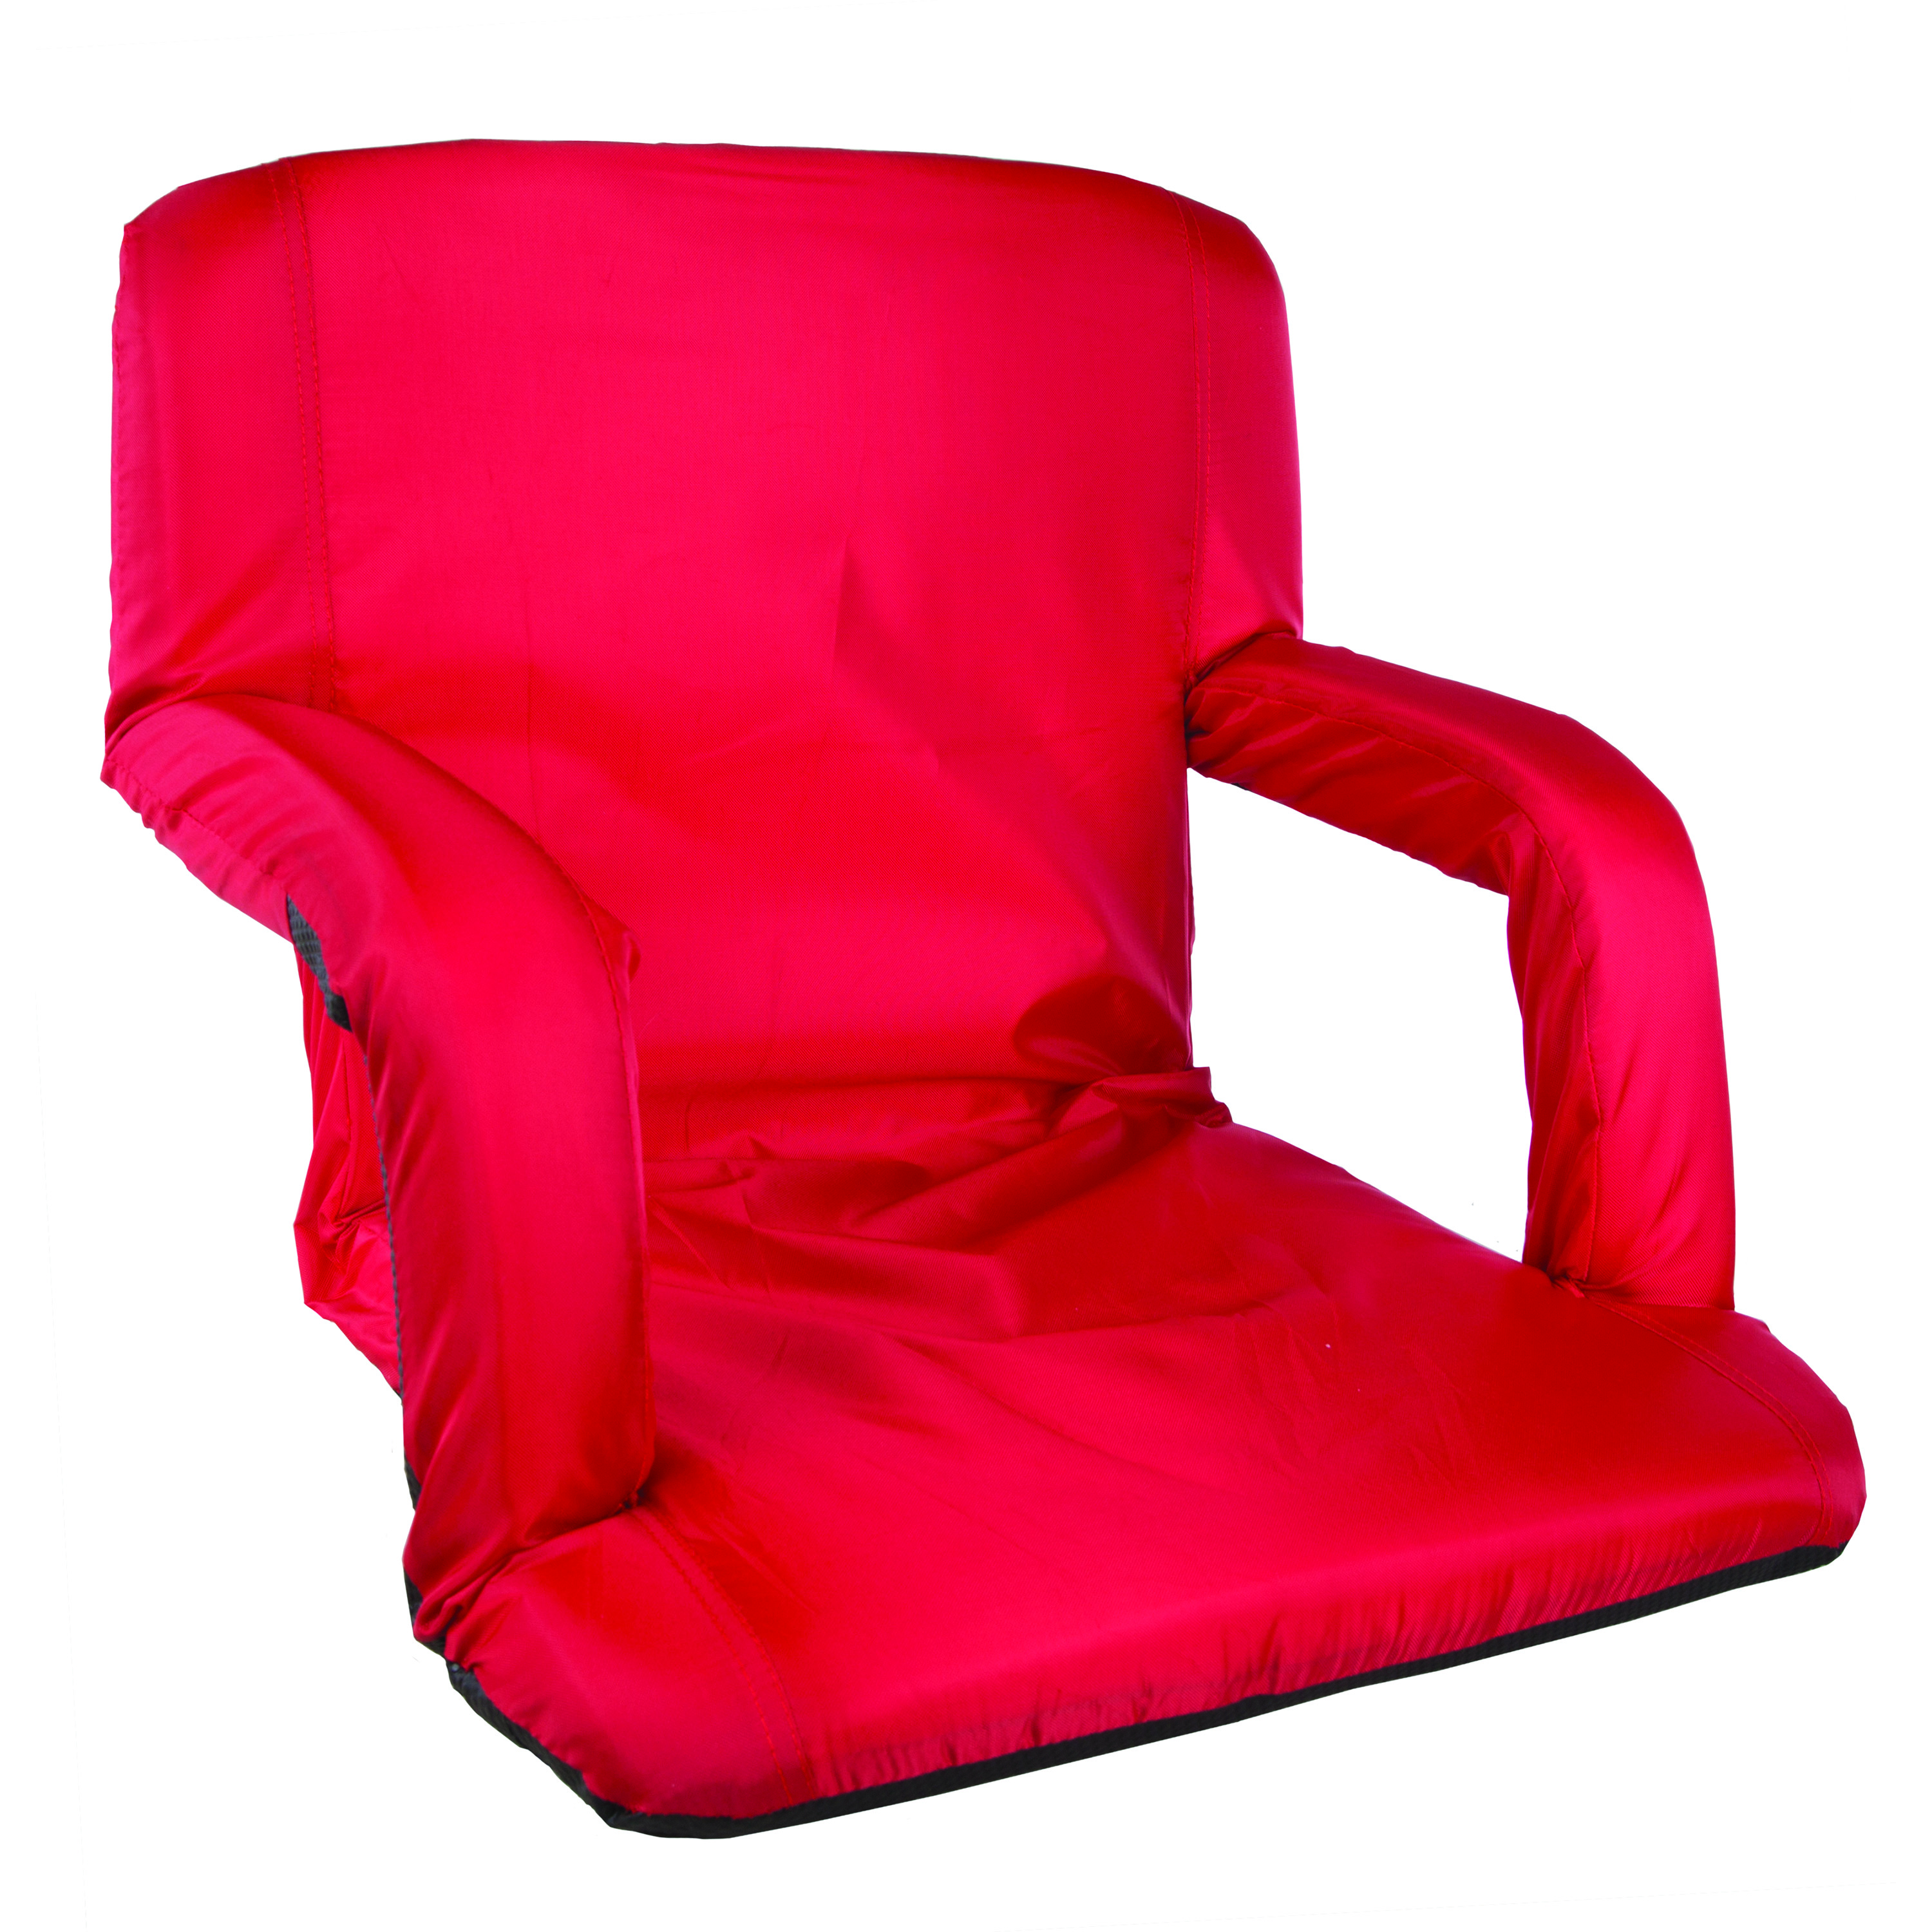 Stansport Multi Fold Padded Arm Chair Red